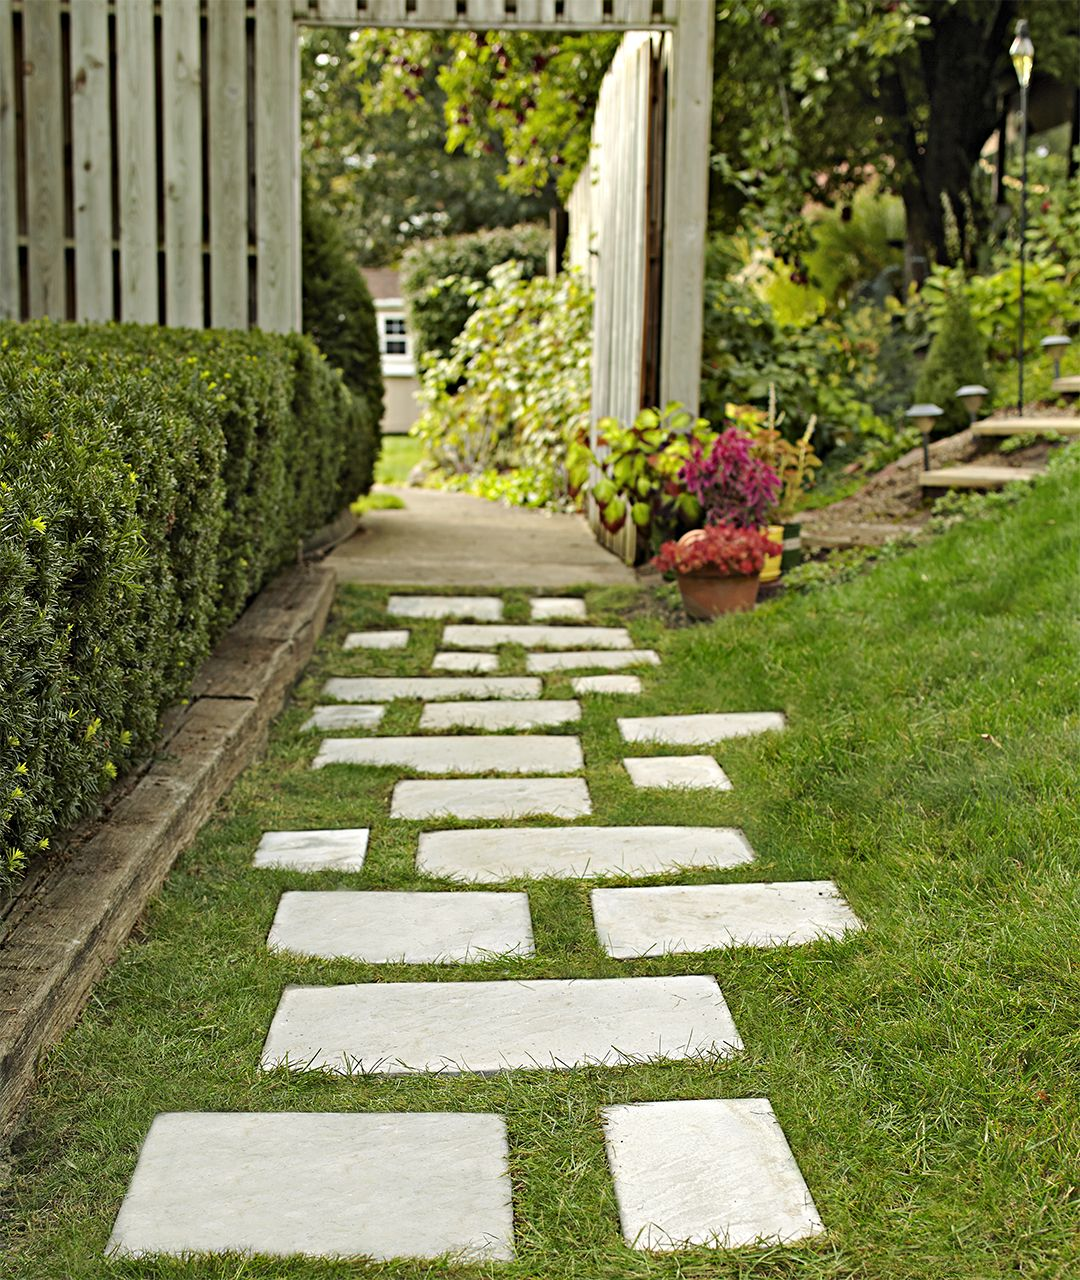 Save Your Yard From Run Off With A Paver Walkway Paver Walkway Walkway Landscaping Garden Walkway